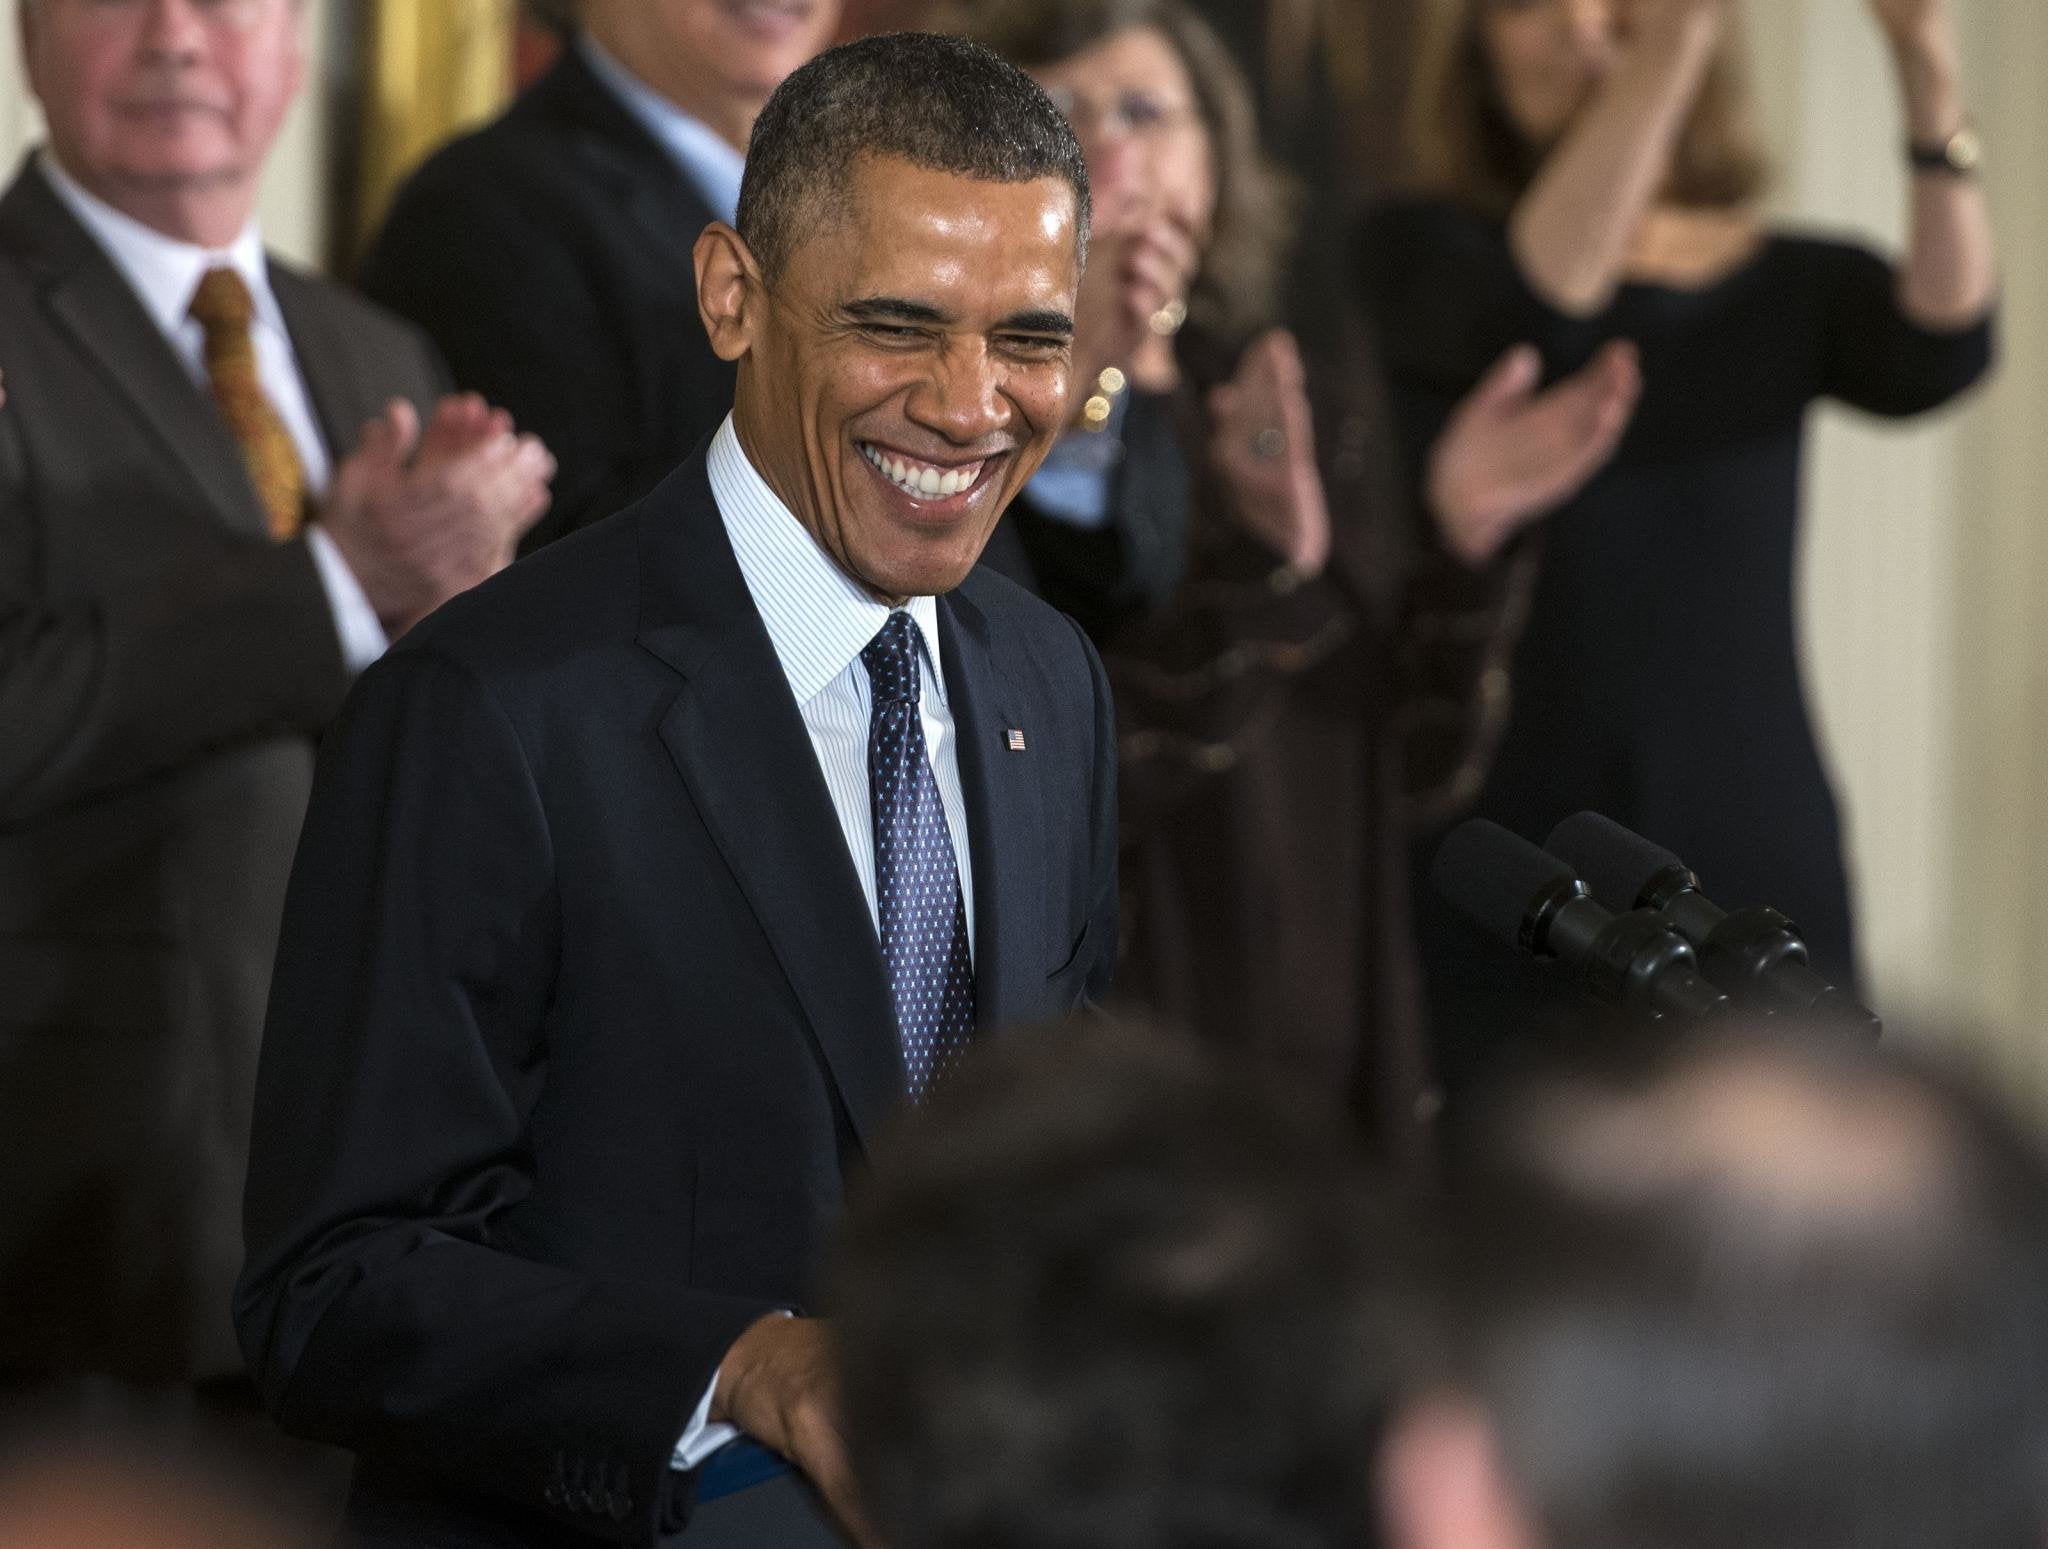 What Are President Obama's Plans Post White House?